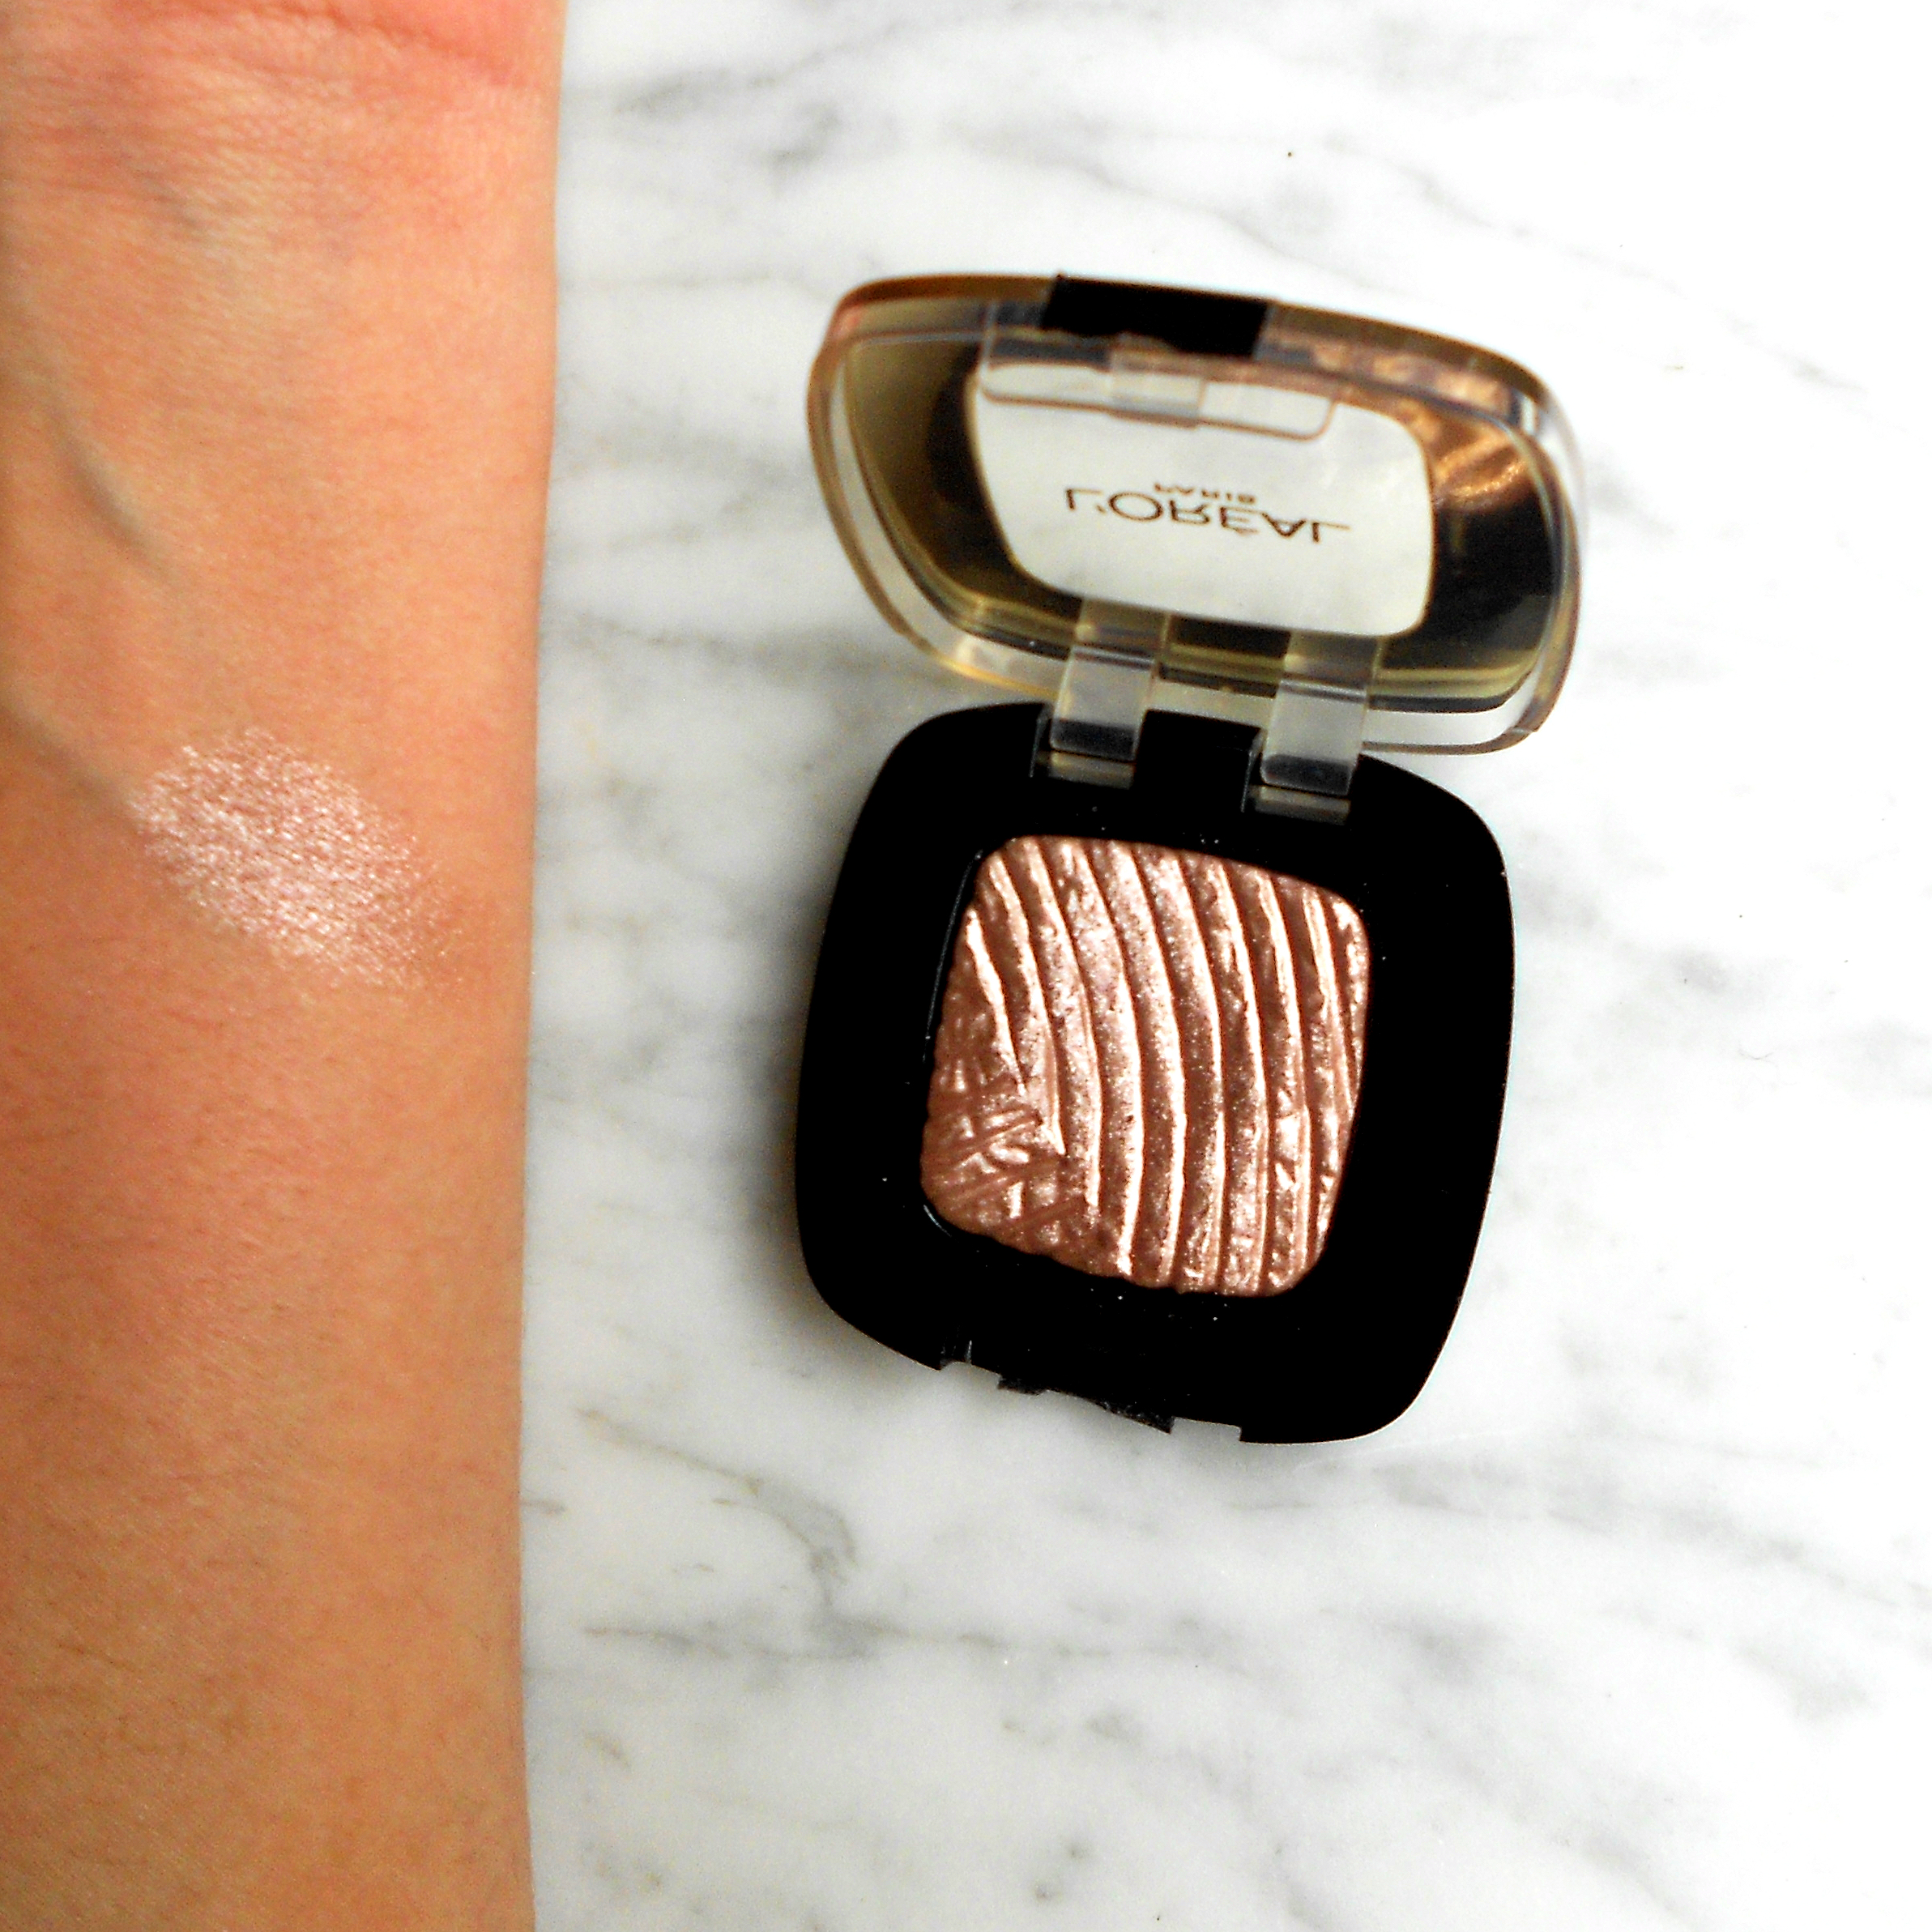 loreal-color-riche-lumiere-501-topaze-rose-eyeshadow